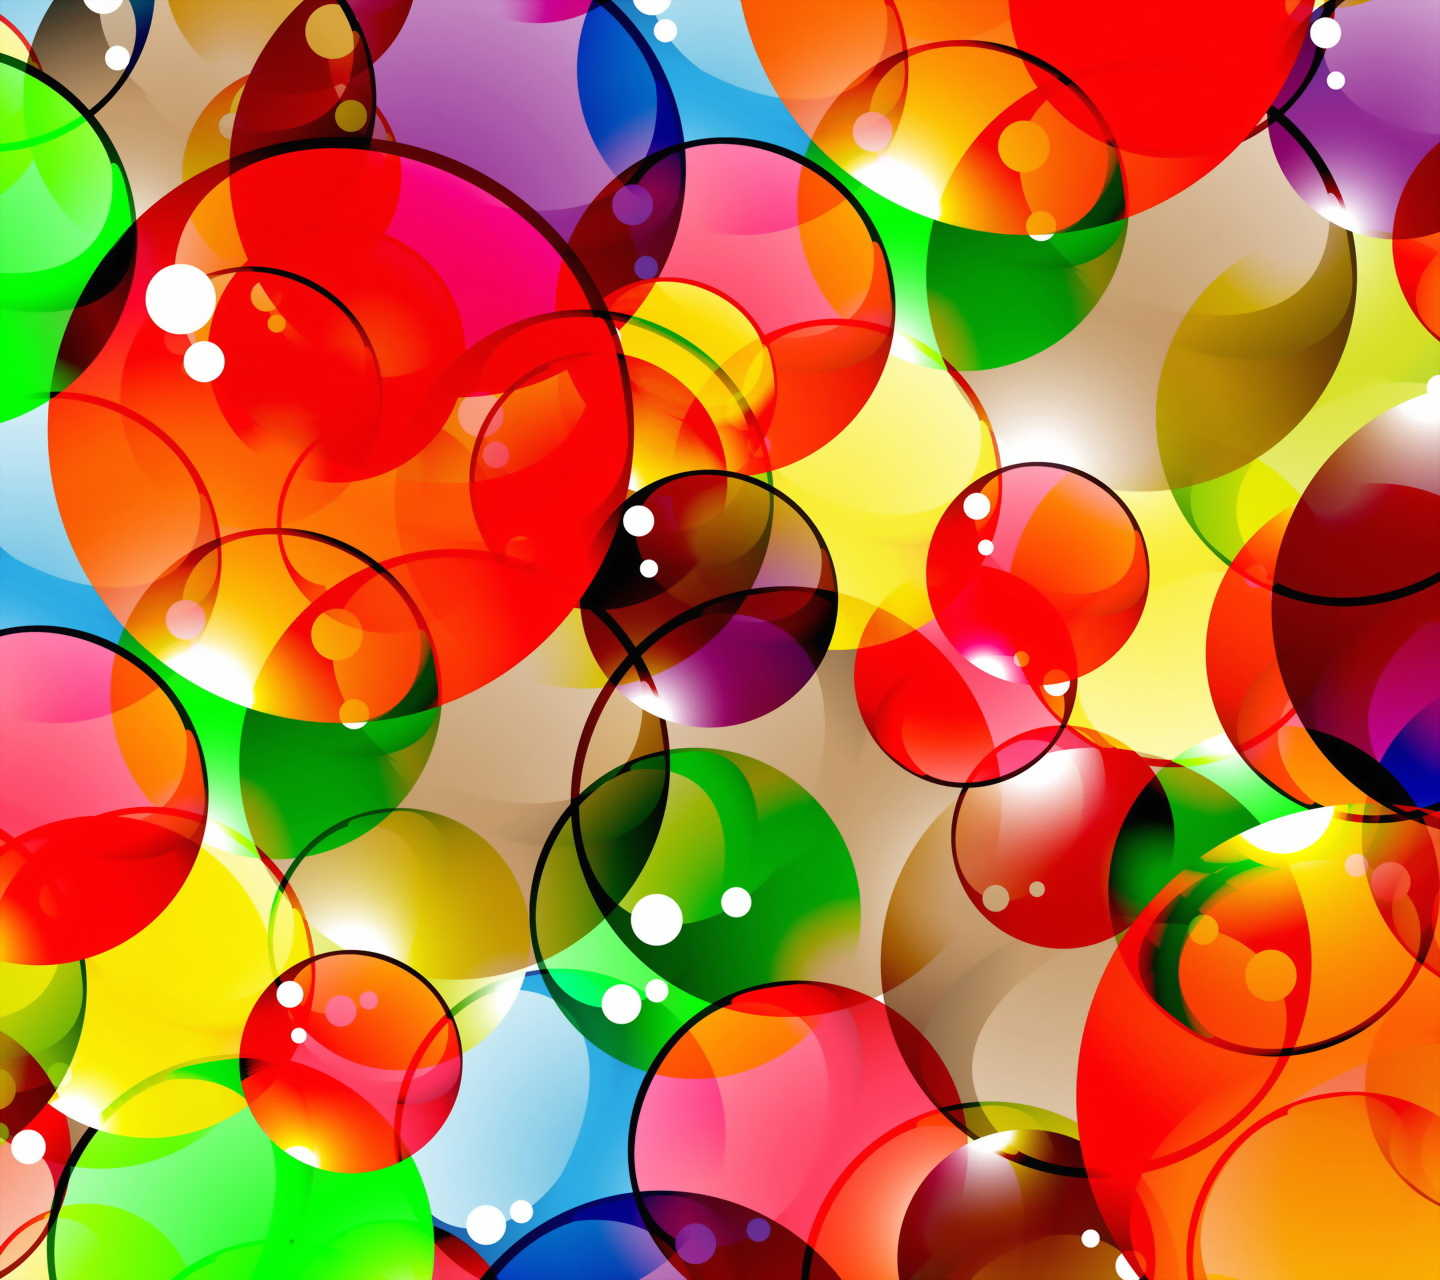 Downlaod Colorful Bubbles Wallpaper